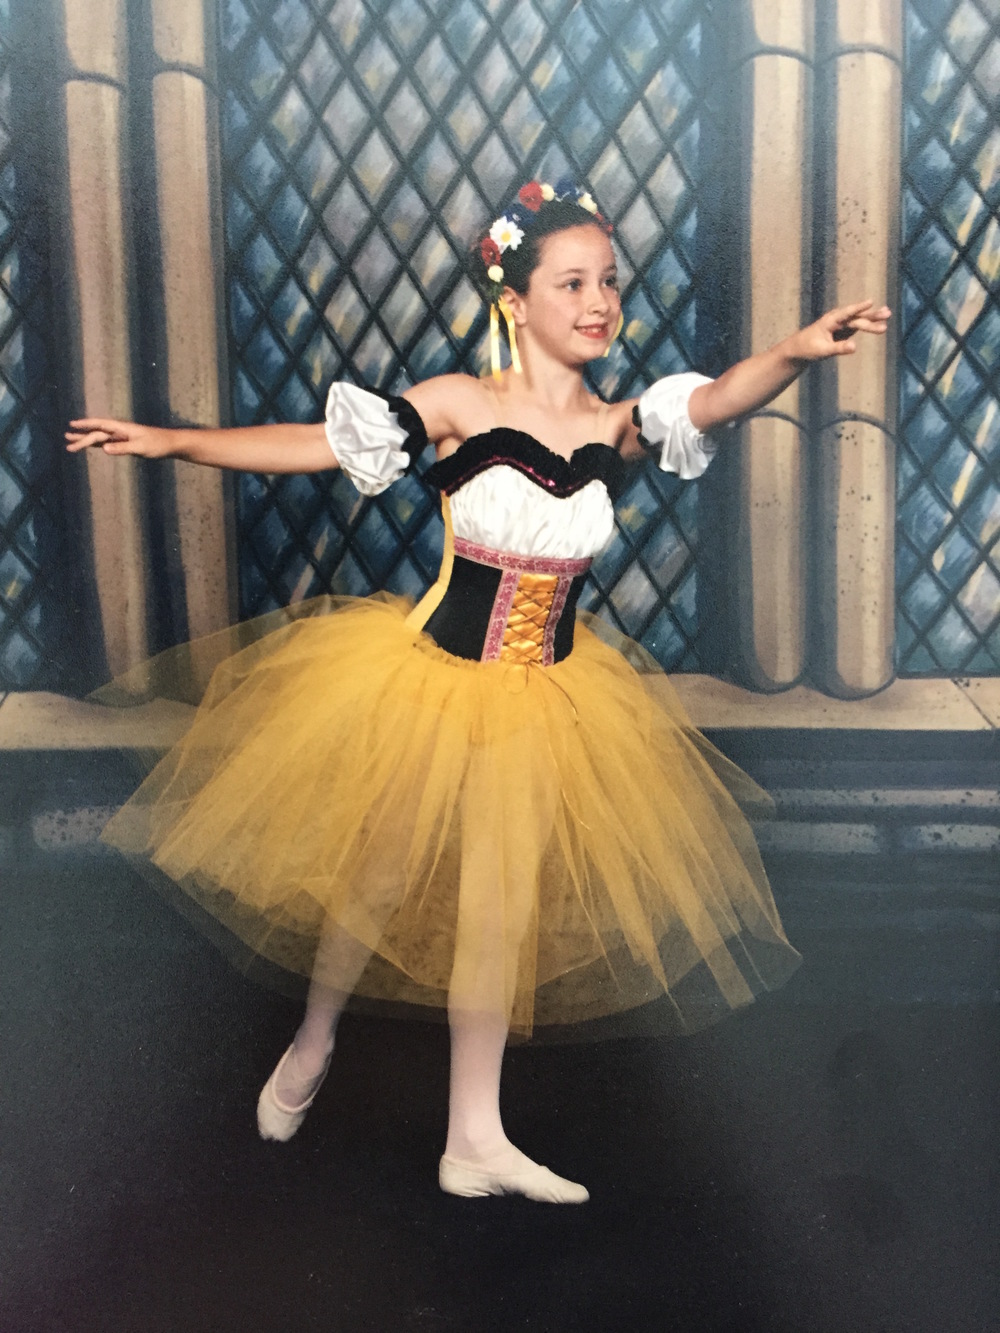 Me, circa 1997, for the Laurel Ballet School's performance of Sleeping Beauty.